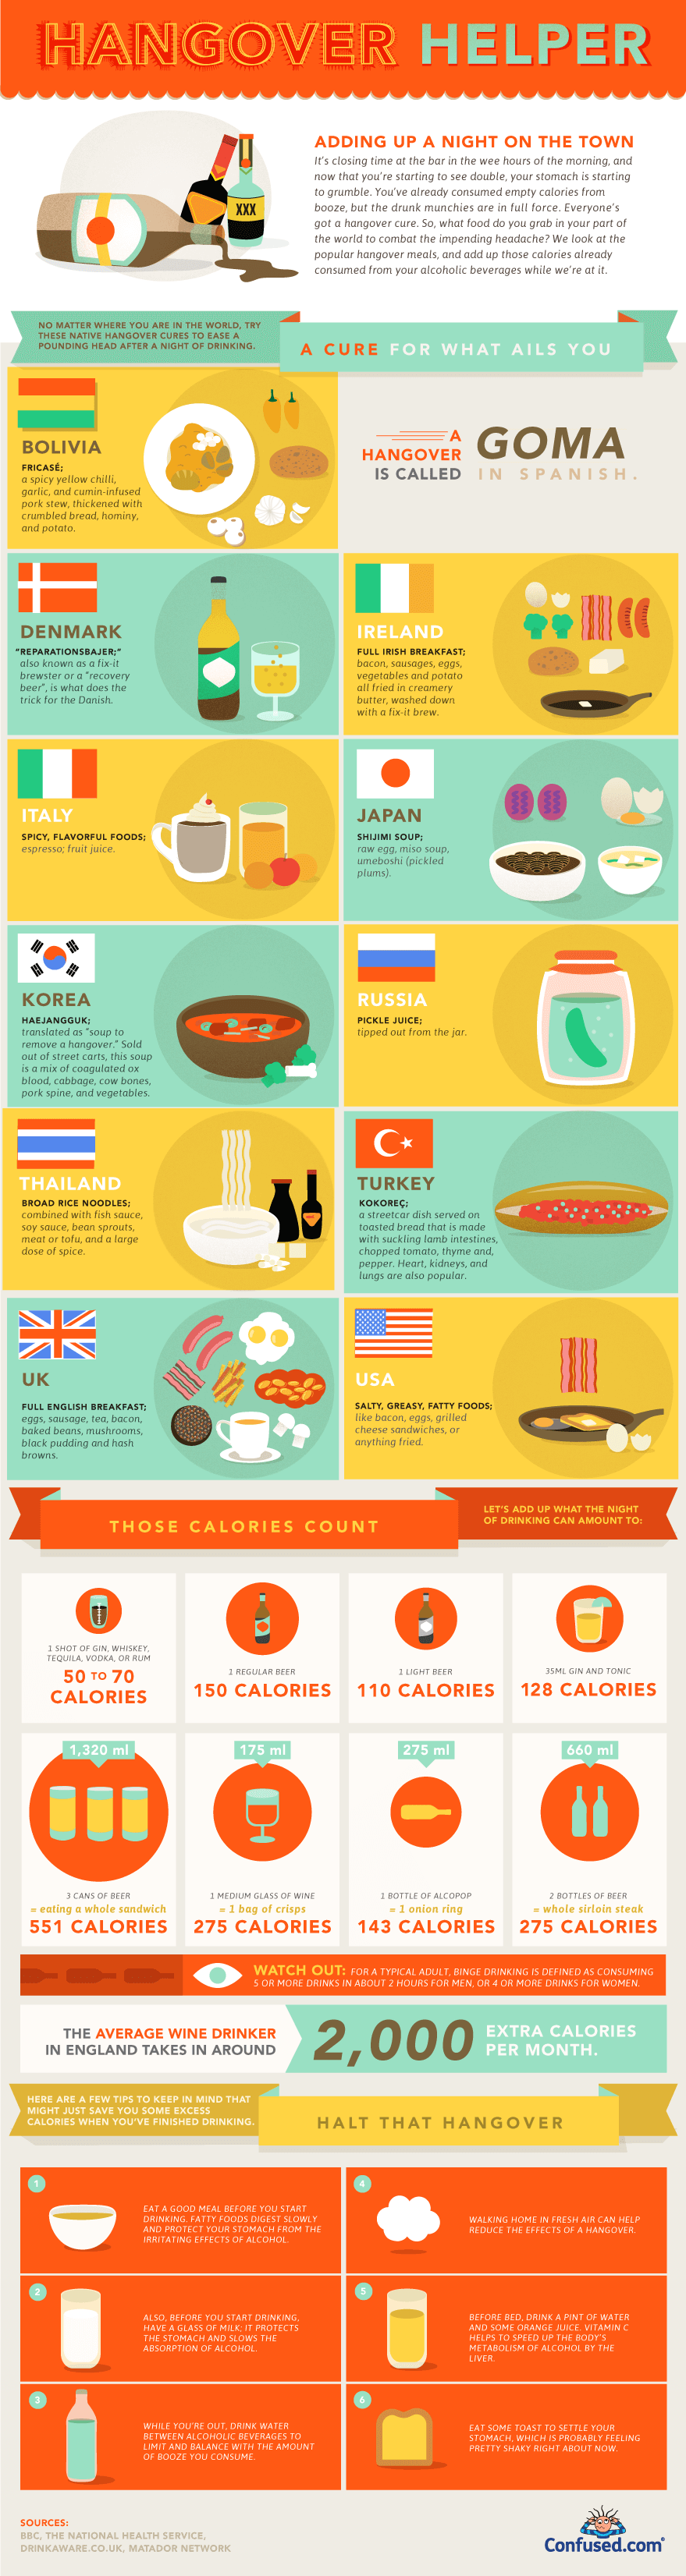 hangover-cures-and-the-calorific-cost-of-booze-tips-tipsographic